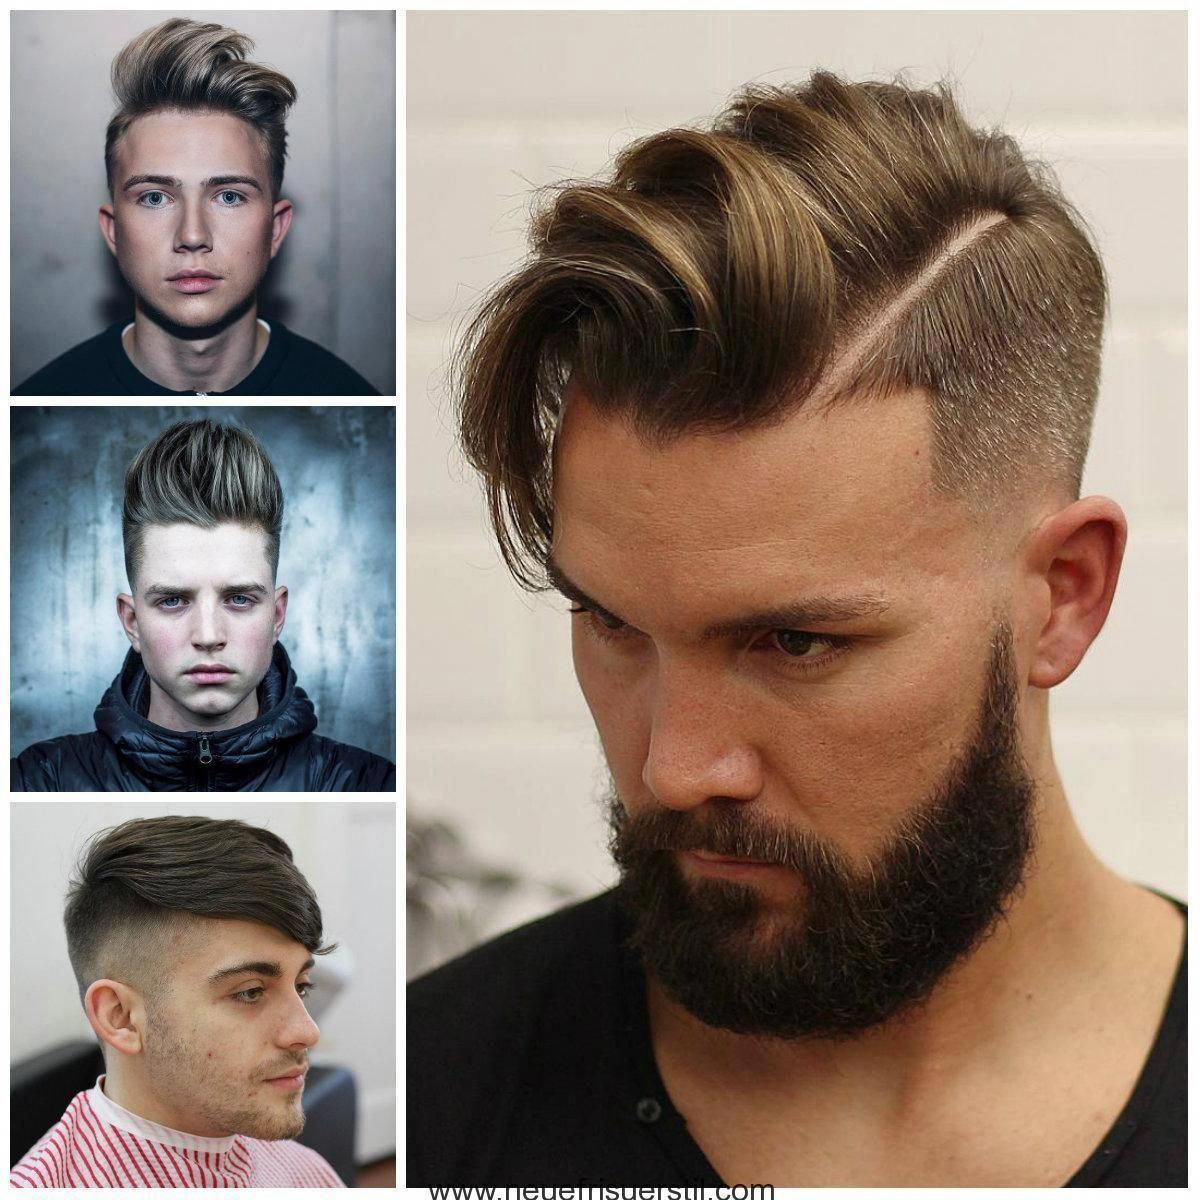 Adore This Hairstyle Undoblackhairstyles Long Hair Styles Men Medium Length Hair Styles Medium Long Hair